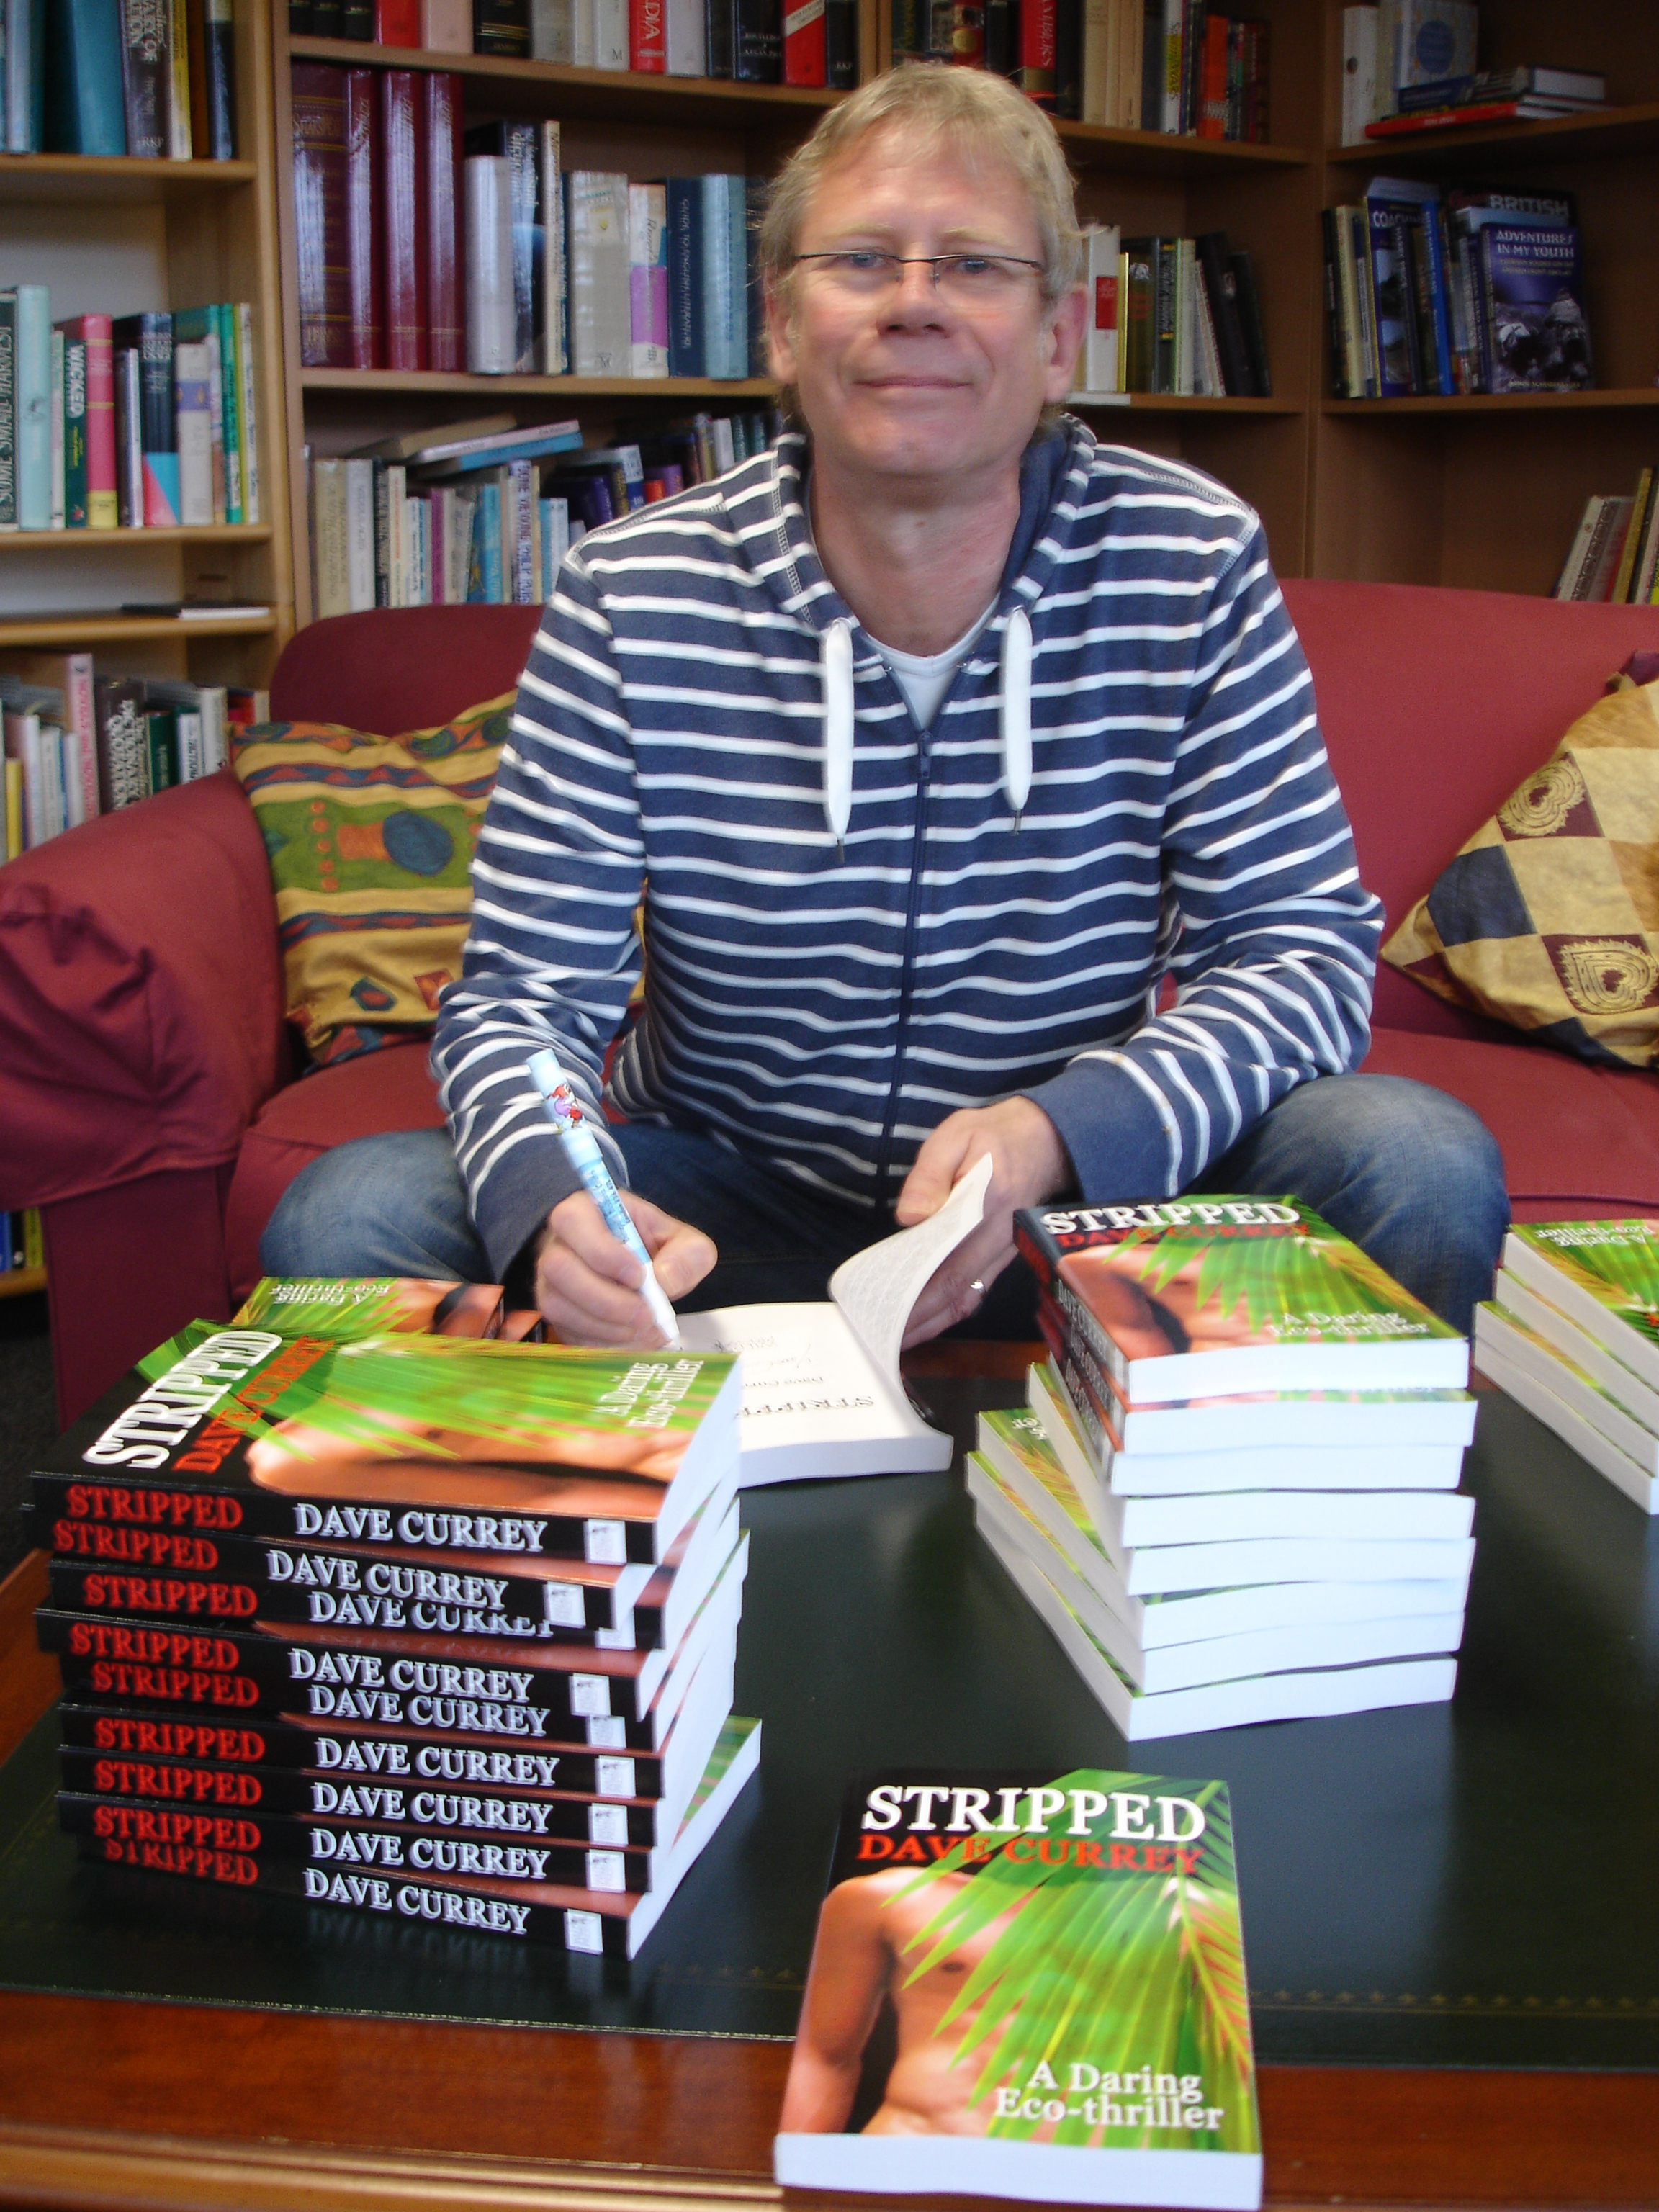 Environmentalist and new author Dave Currey signs his eco thriller Stripped.\\n\\n26/10/2010 15:01